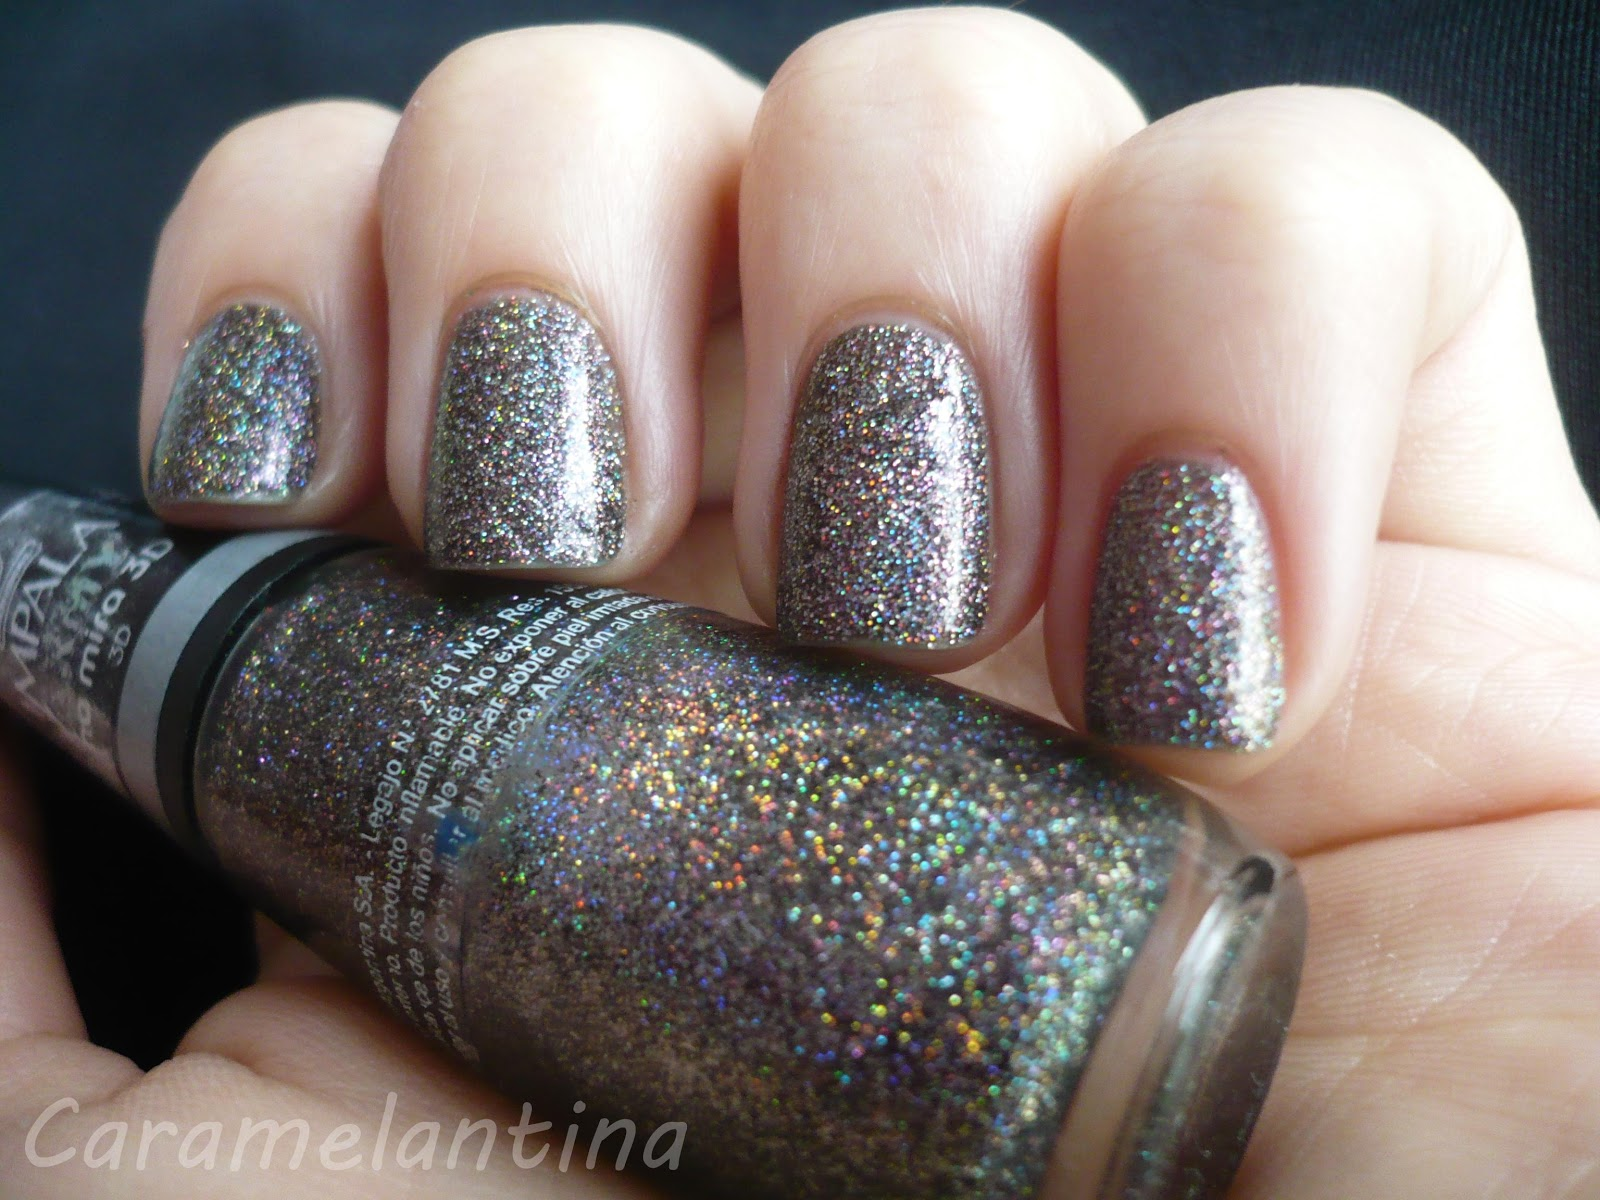 Esmalte holográfico glitter, opiniones swatch review